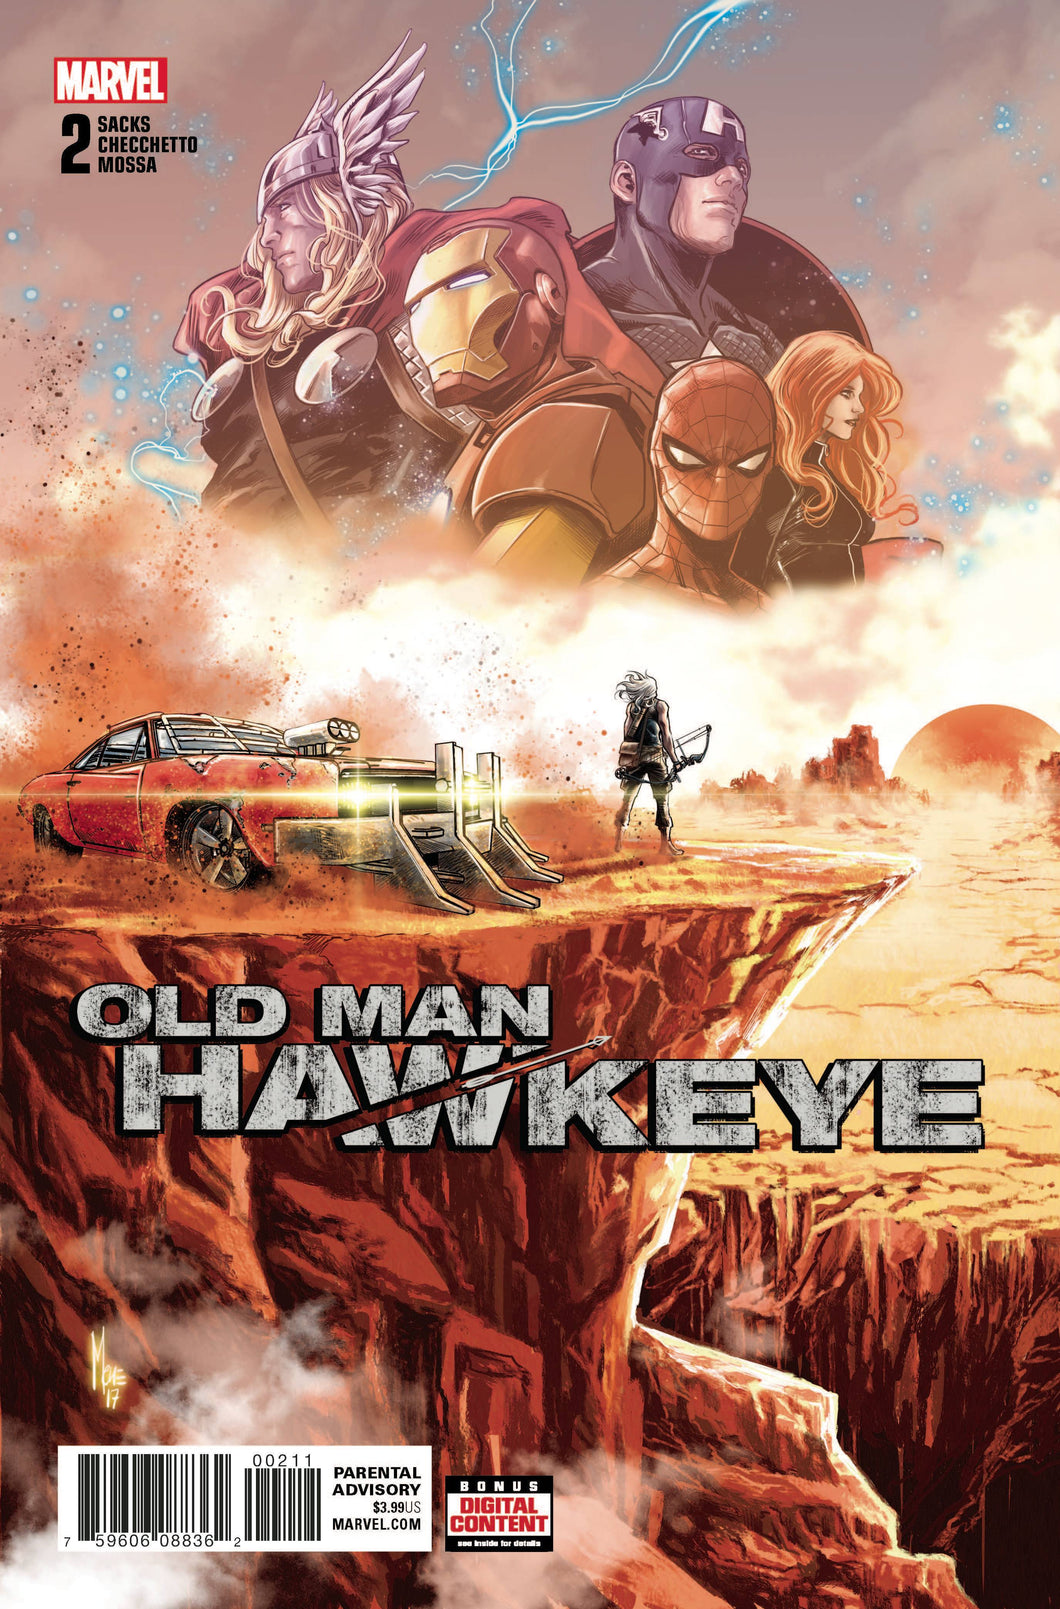 OLD MAN HAWKEYE #2 (OF 12) LEG 02/14/18 RD